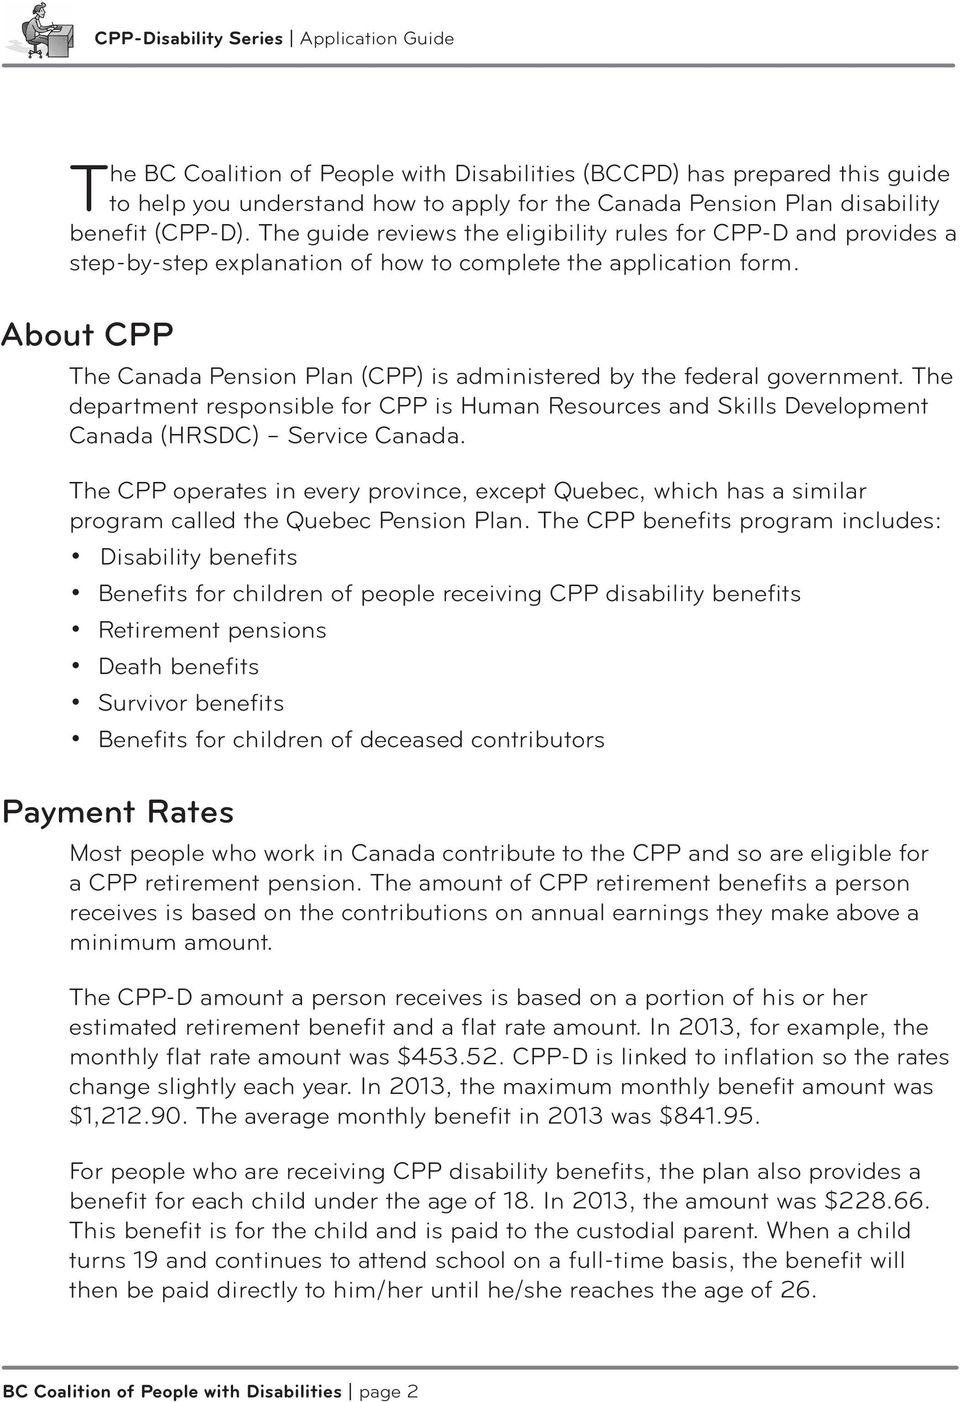 About CPP The Canada Pension Plan (CPP) is administered by the federal government. The department responsible for CPP is Human Resources and Skills Development Canada (HRSDC) Service Canada.